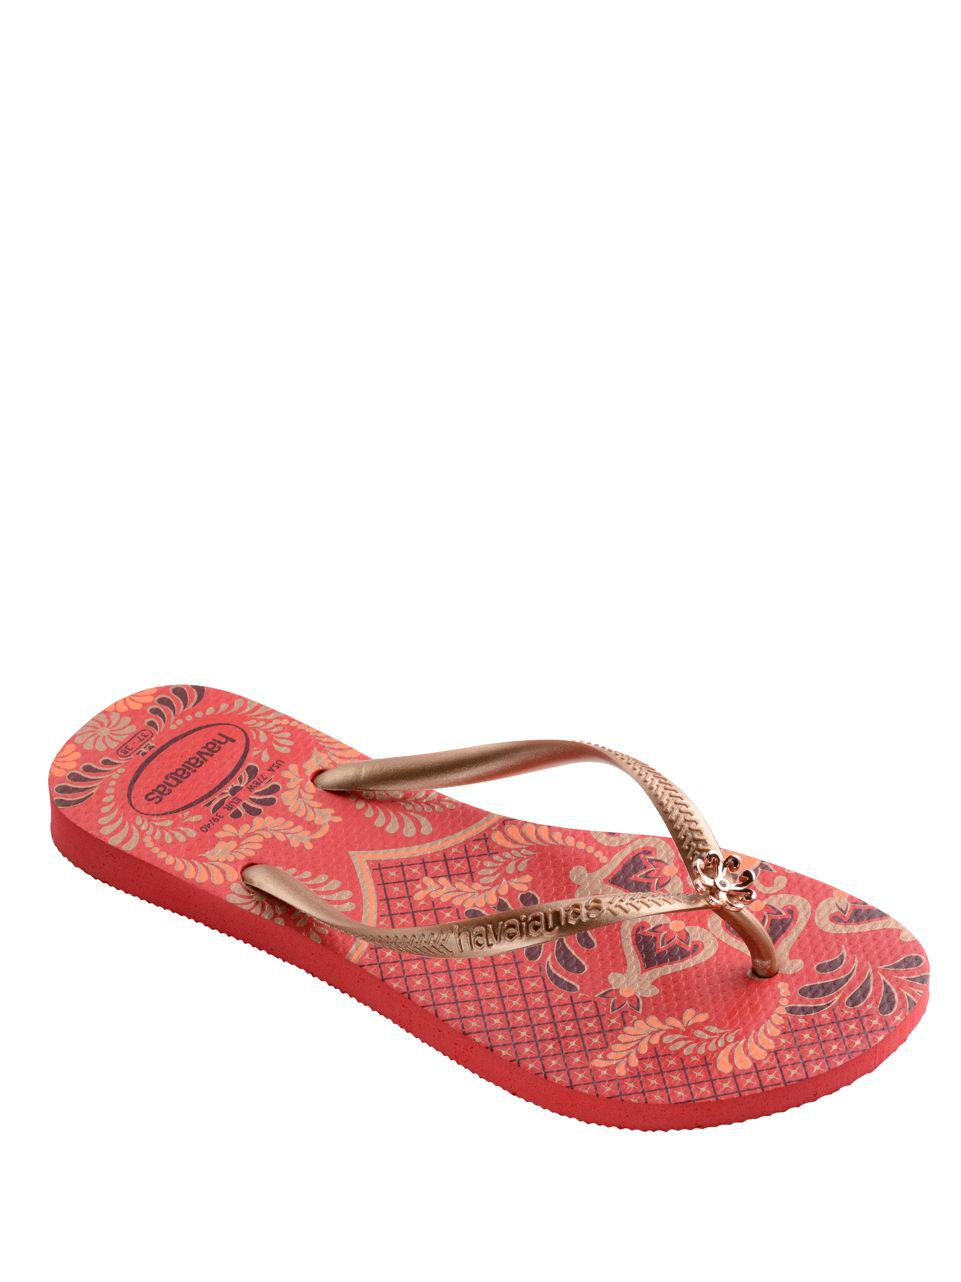 b718cb34d Lyst - Havaianas Peacock Paisley Slim Thematic Flip Flops in Gray